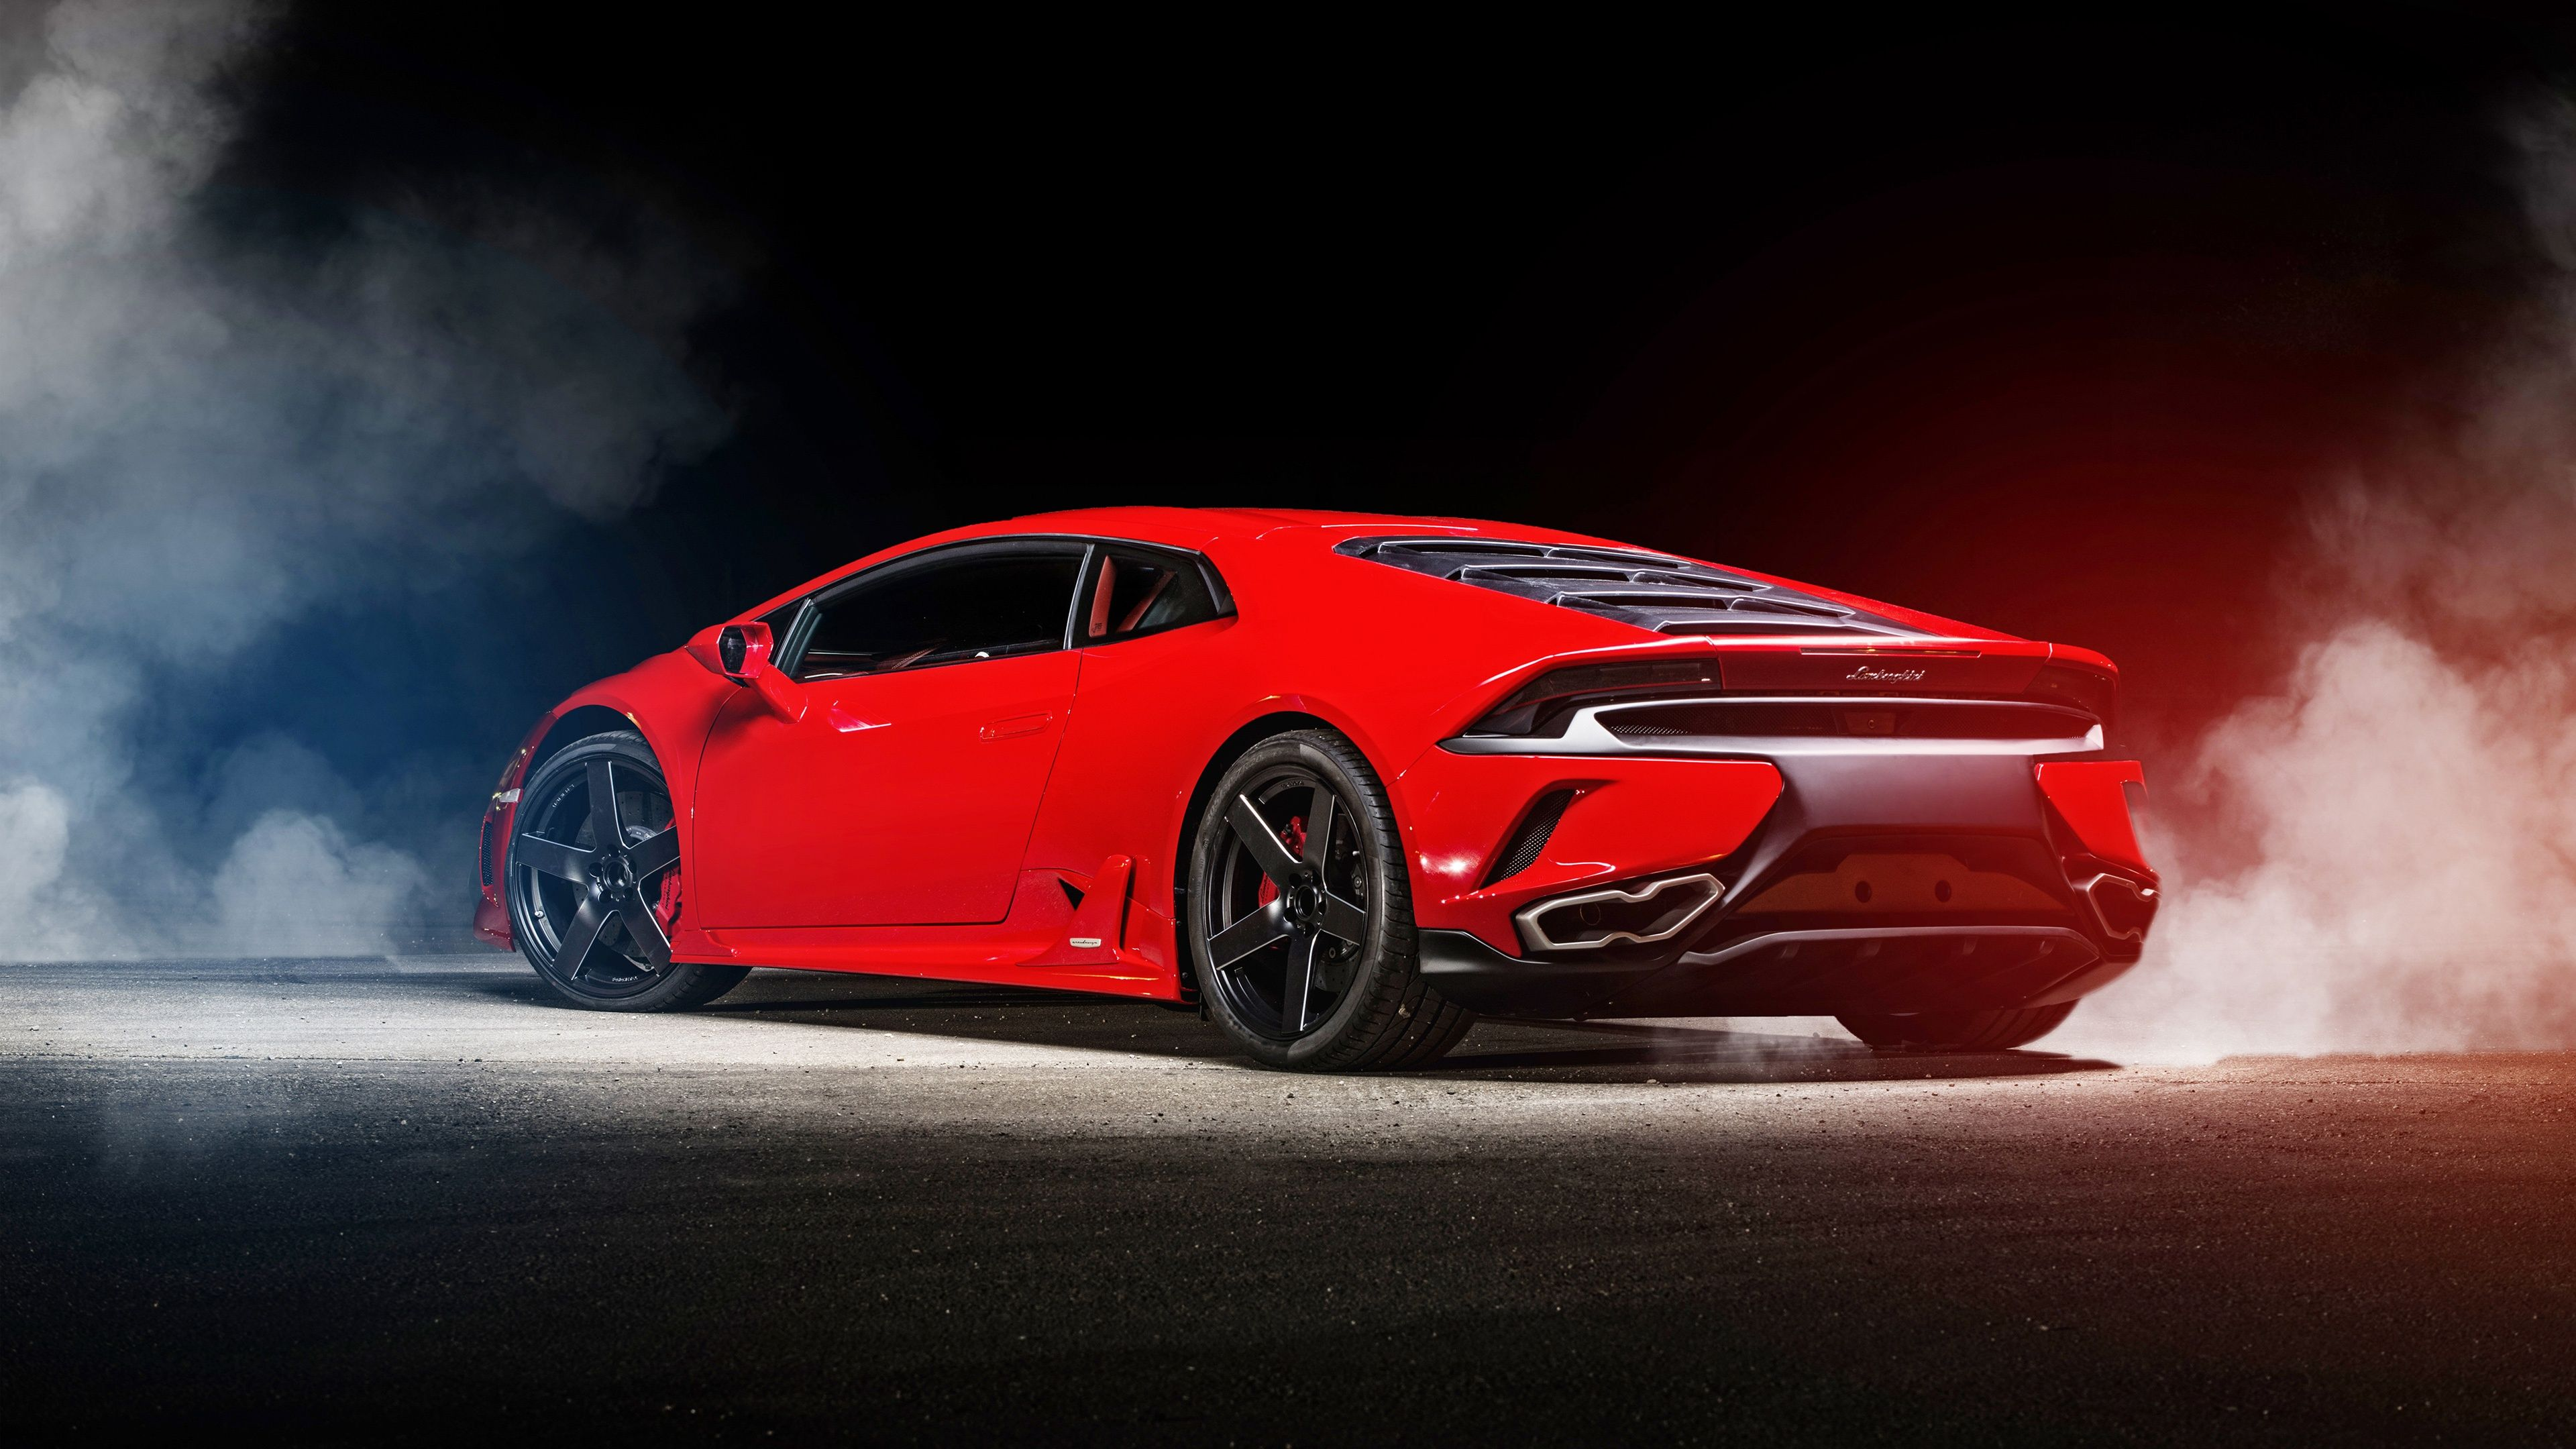 Merveilleux Adv Wheels Lamborghini Huracan Cars HD K Wallpapers